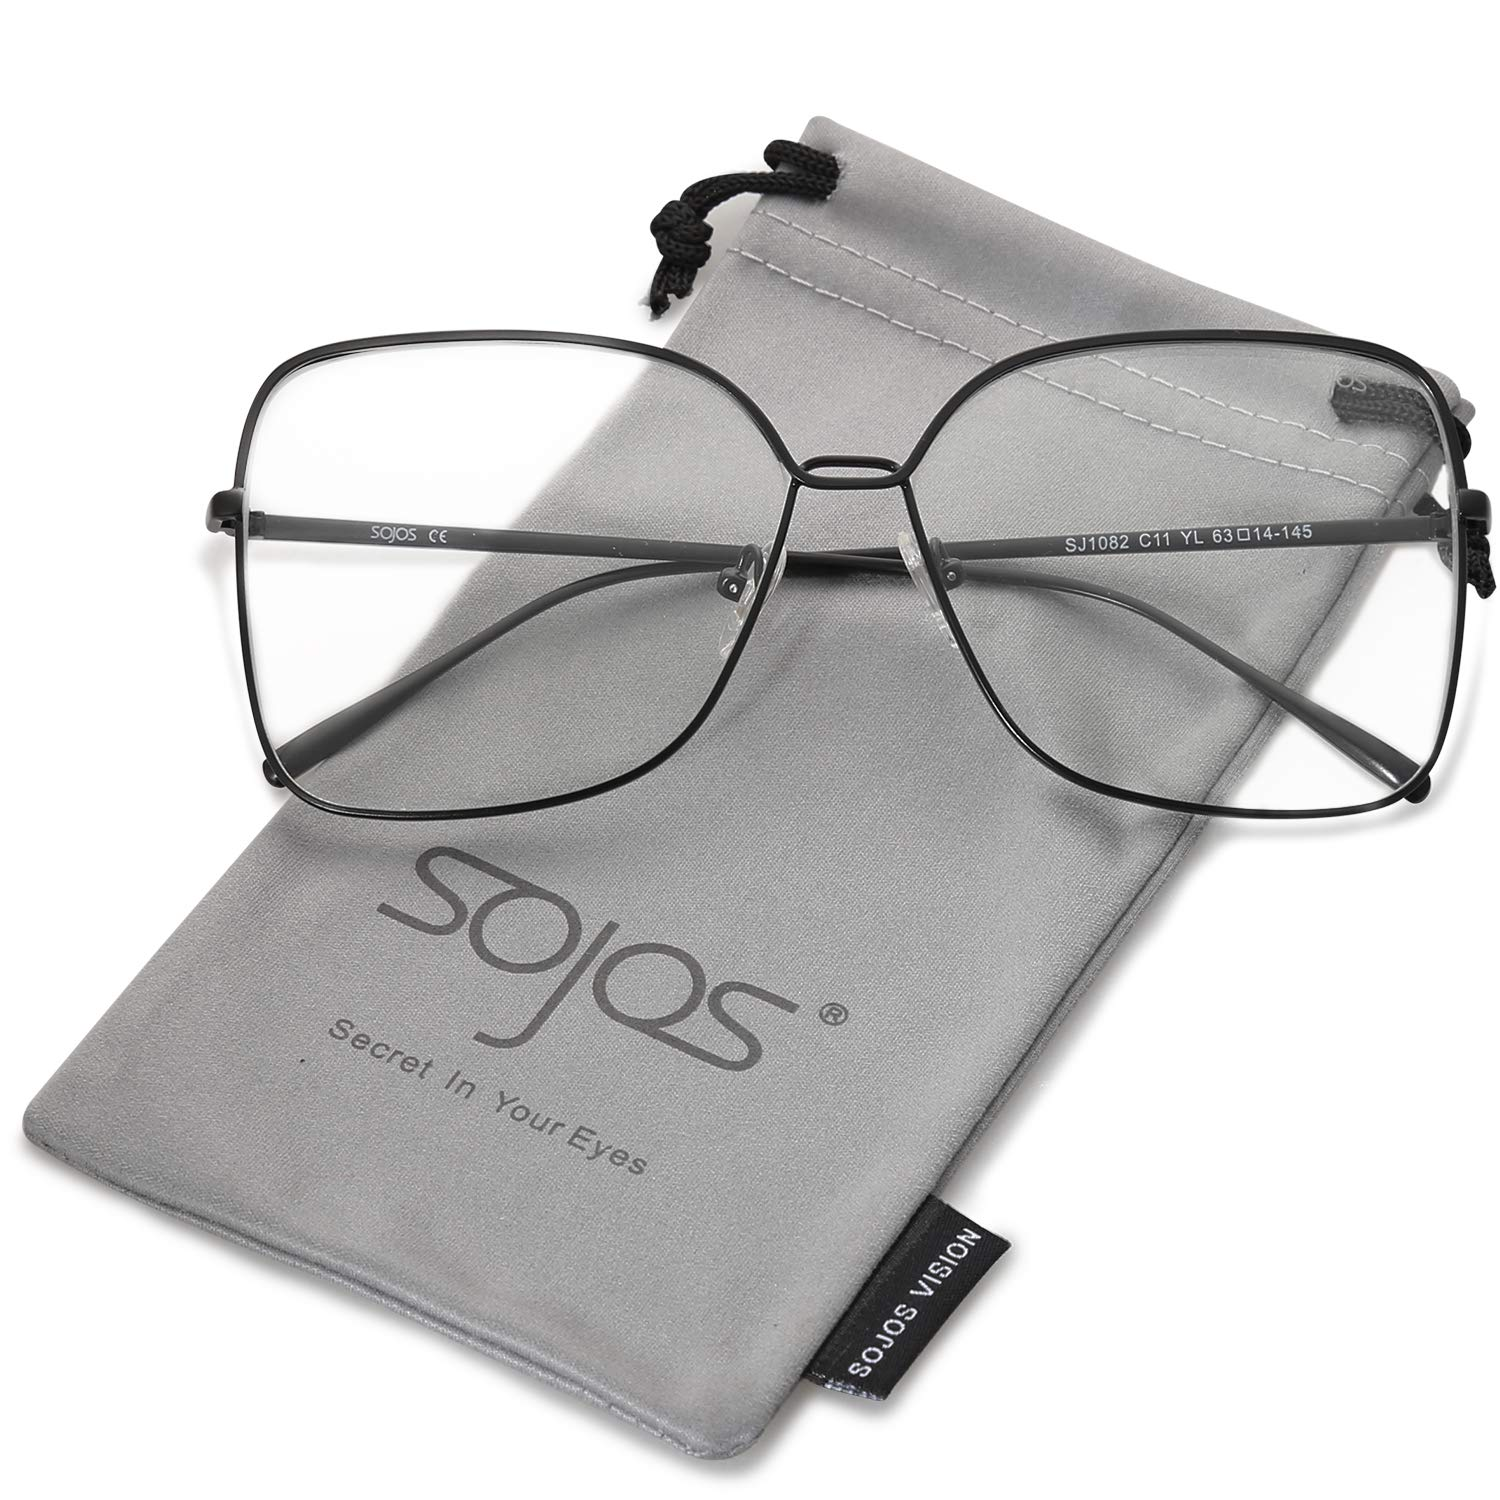 SOJOS Square Oversized Clear lens Computer Glasses Eyewear Frame SJ1082 with Matte Black Frame/Clear Lens